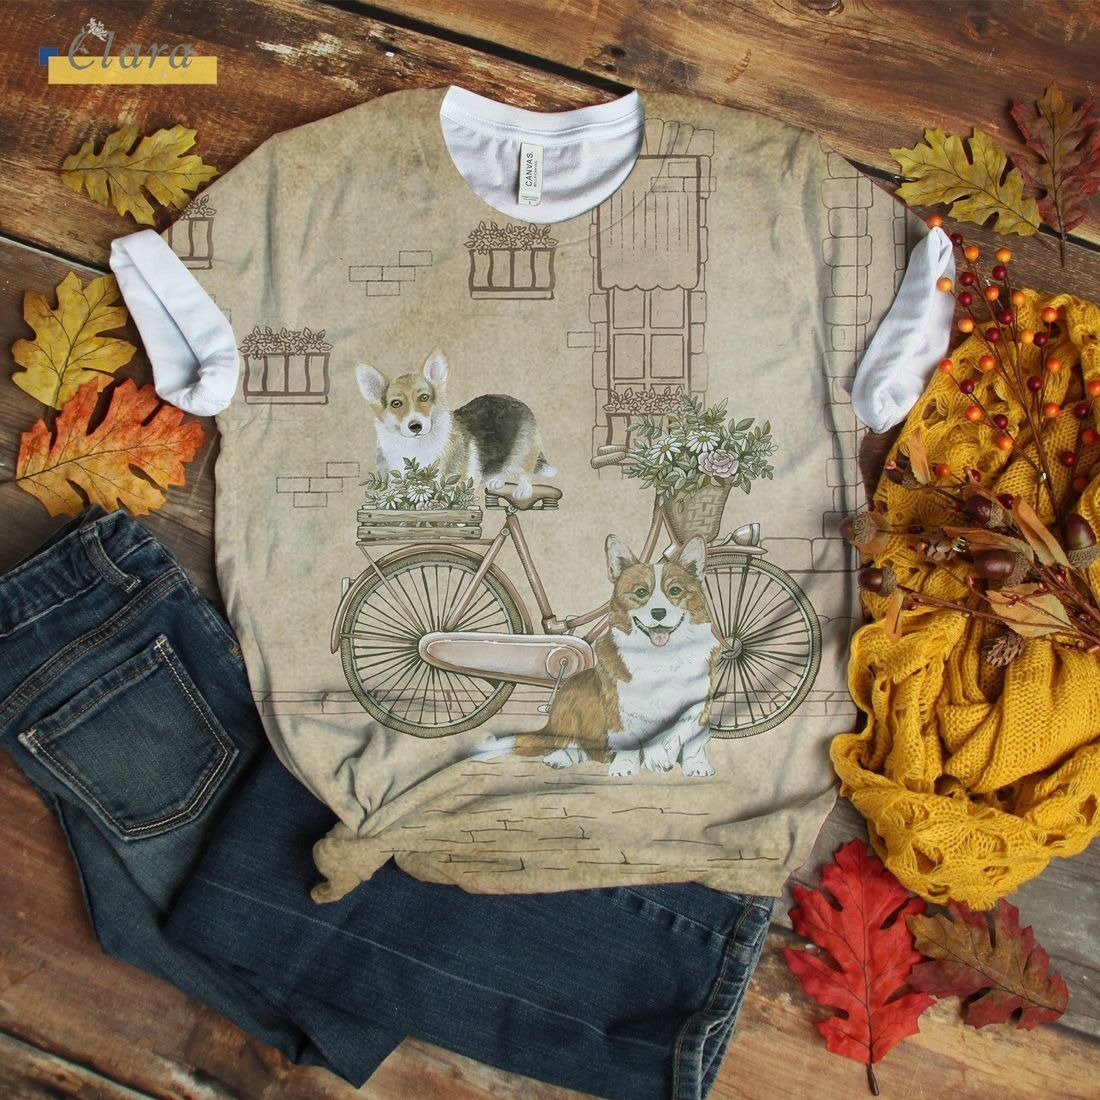 Dachshund T-shirt Vintage Bicycle